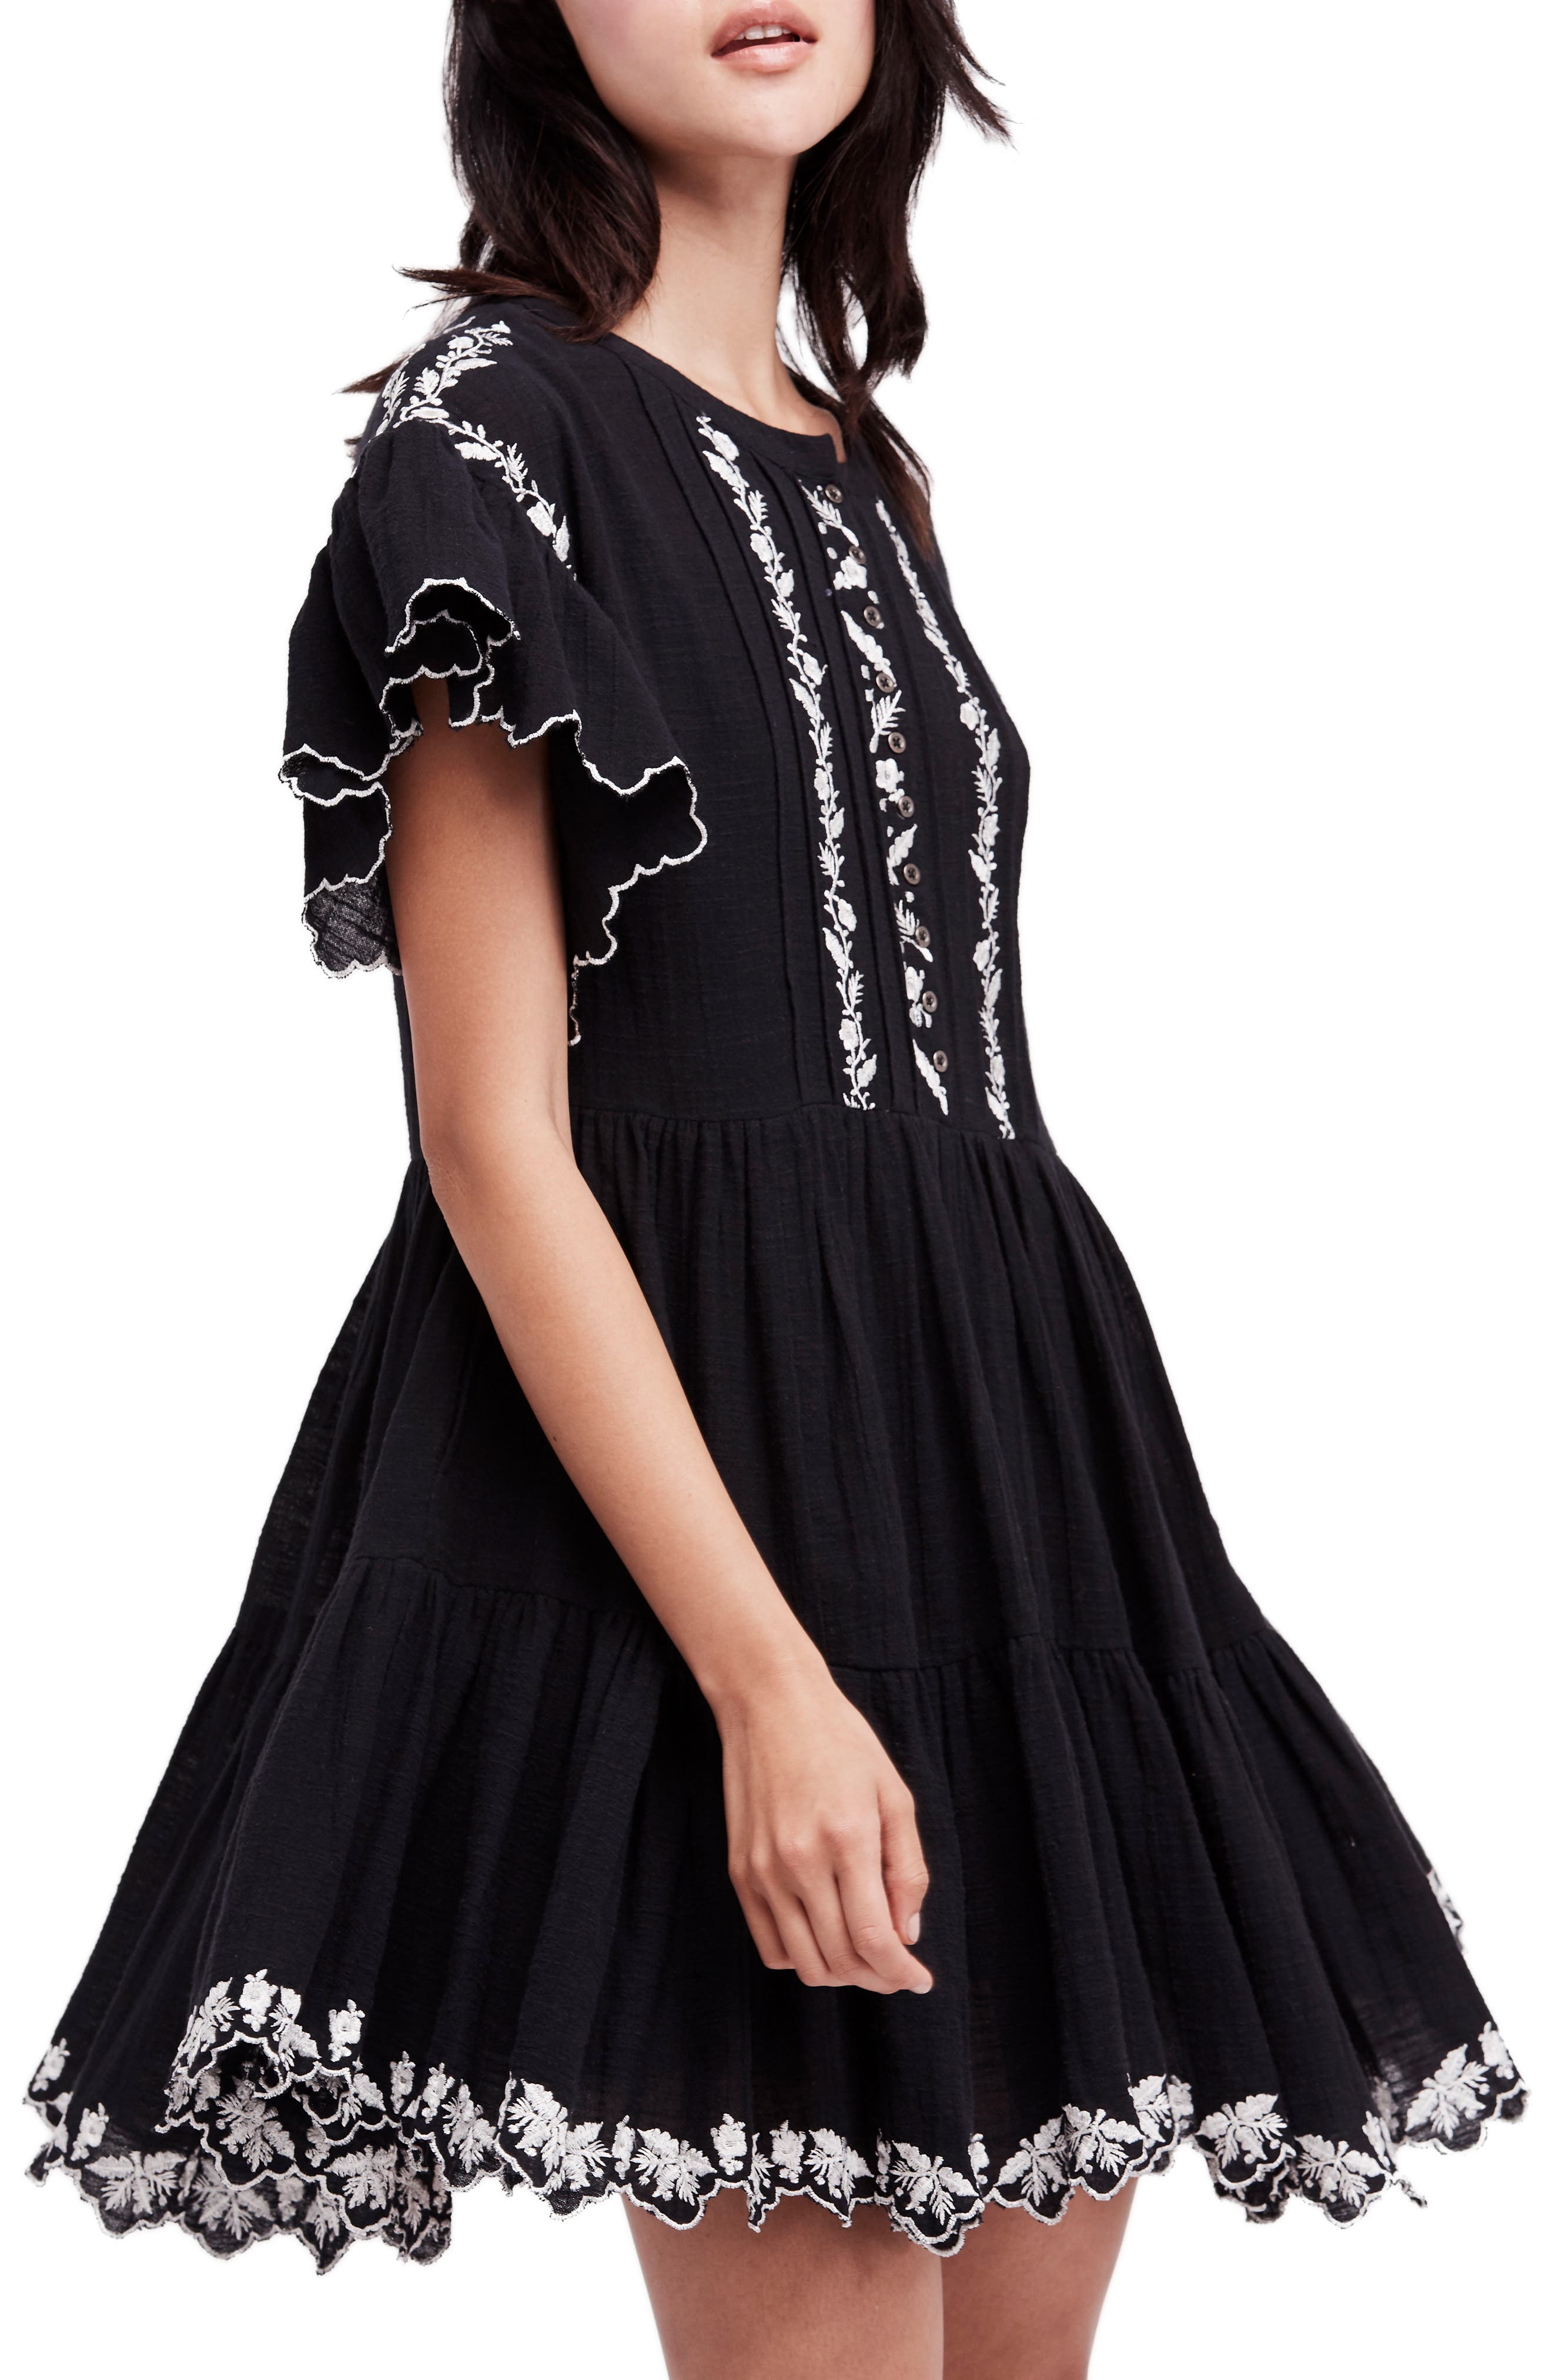 Santiago Embroidered Minidress,                             Main thumbnail 1, color,                             Black